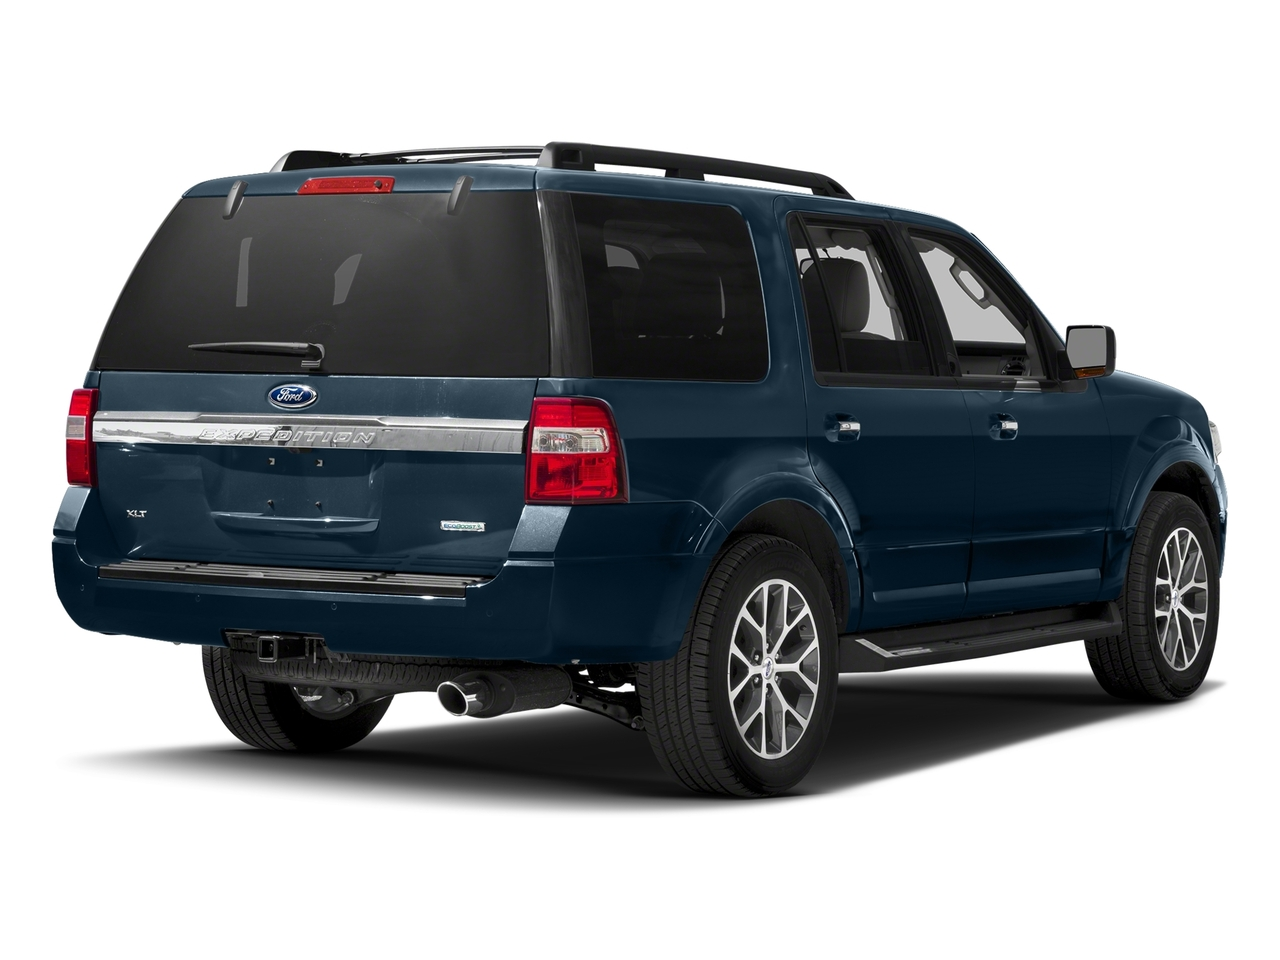 2017 Ford Expedition XLT/KING RANCH SUV Slide